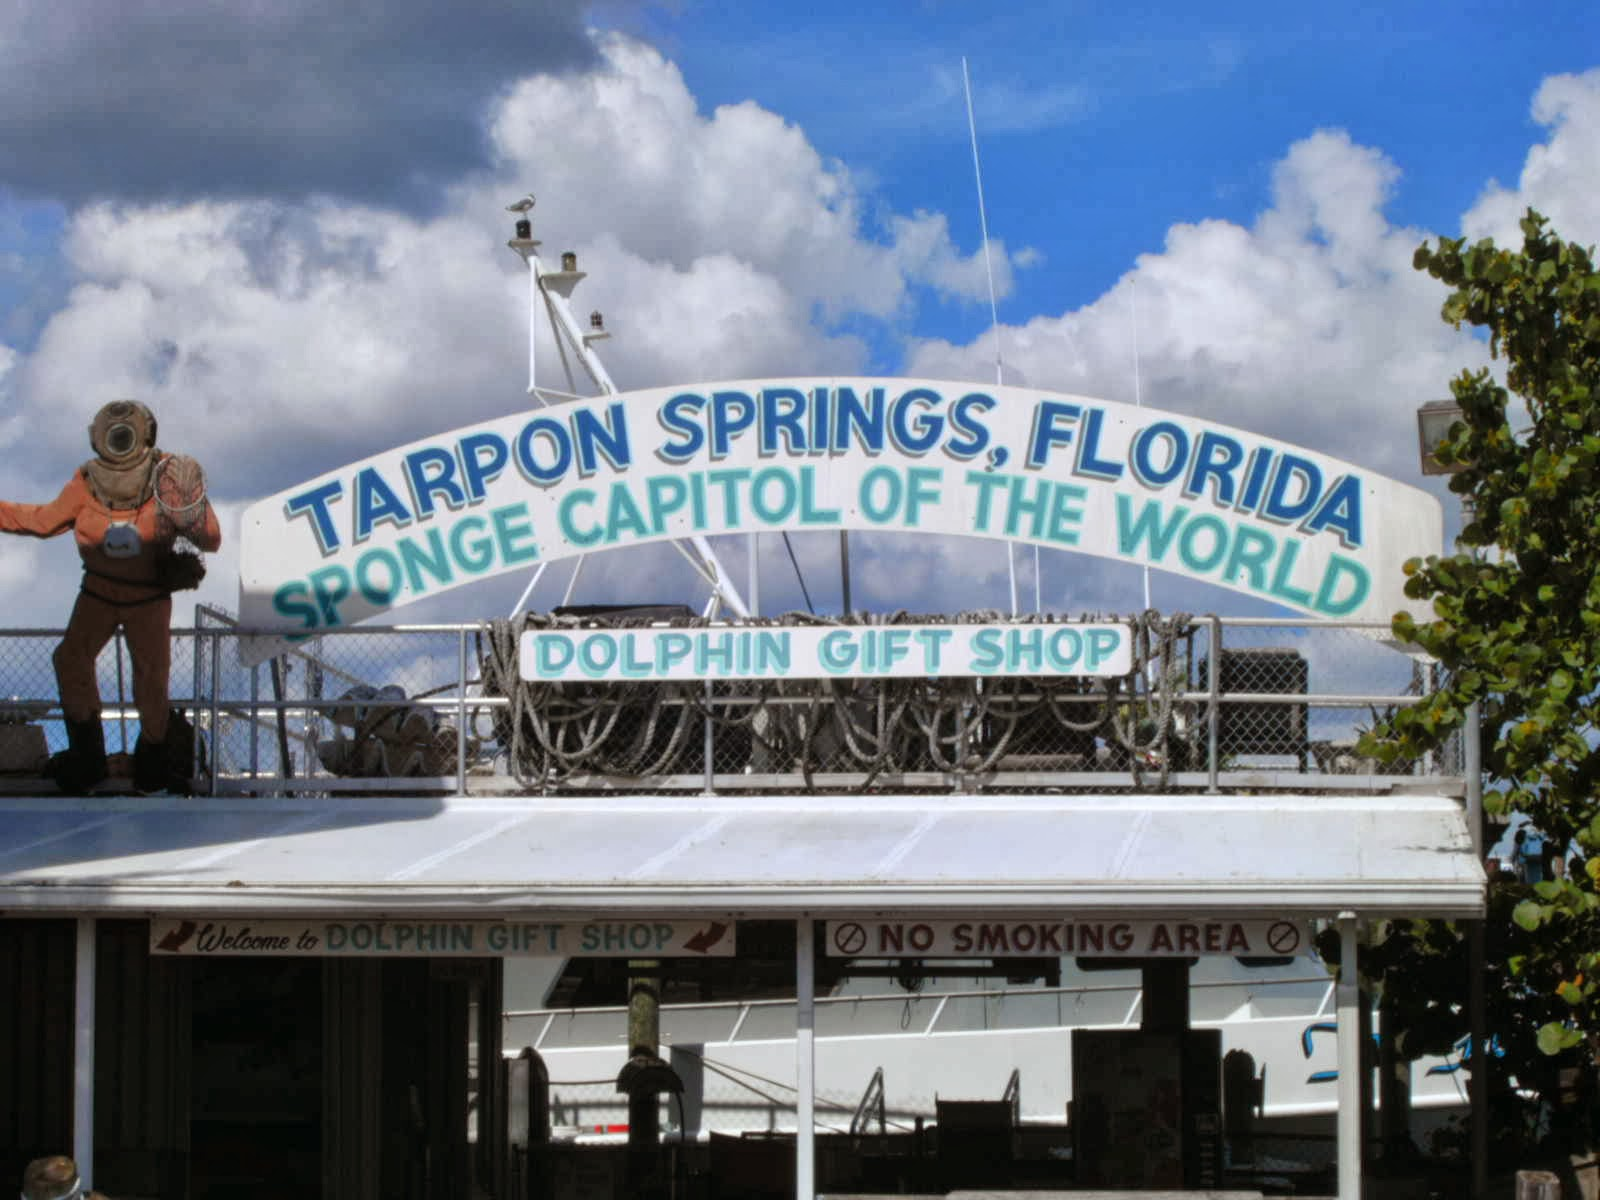 tarpon springs personals Browse online personals in tarpon springs personals tarpon springs is your #1 online resource for finding a date in tarpon springs with our free online personal ads, you can find loads of available singles in florida.